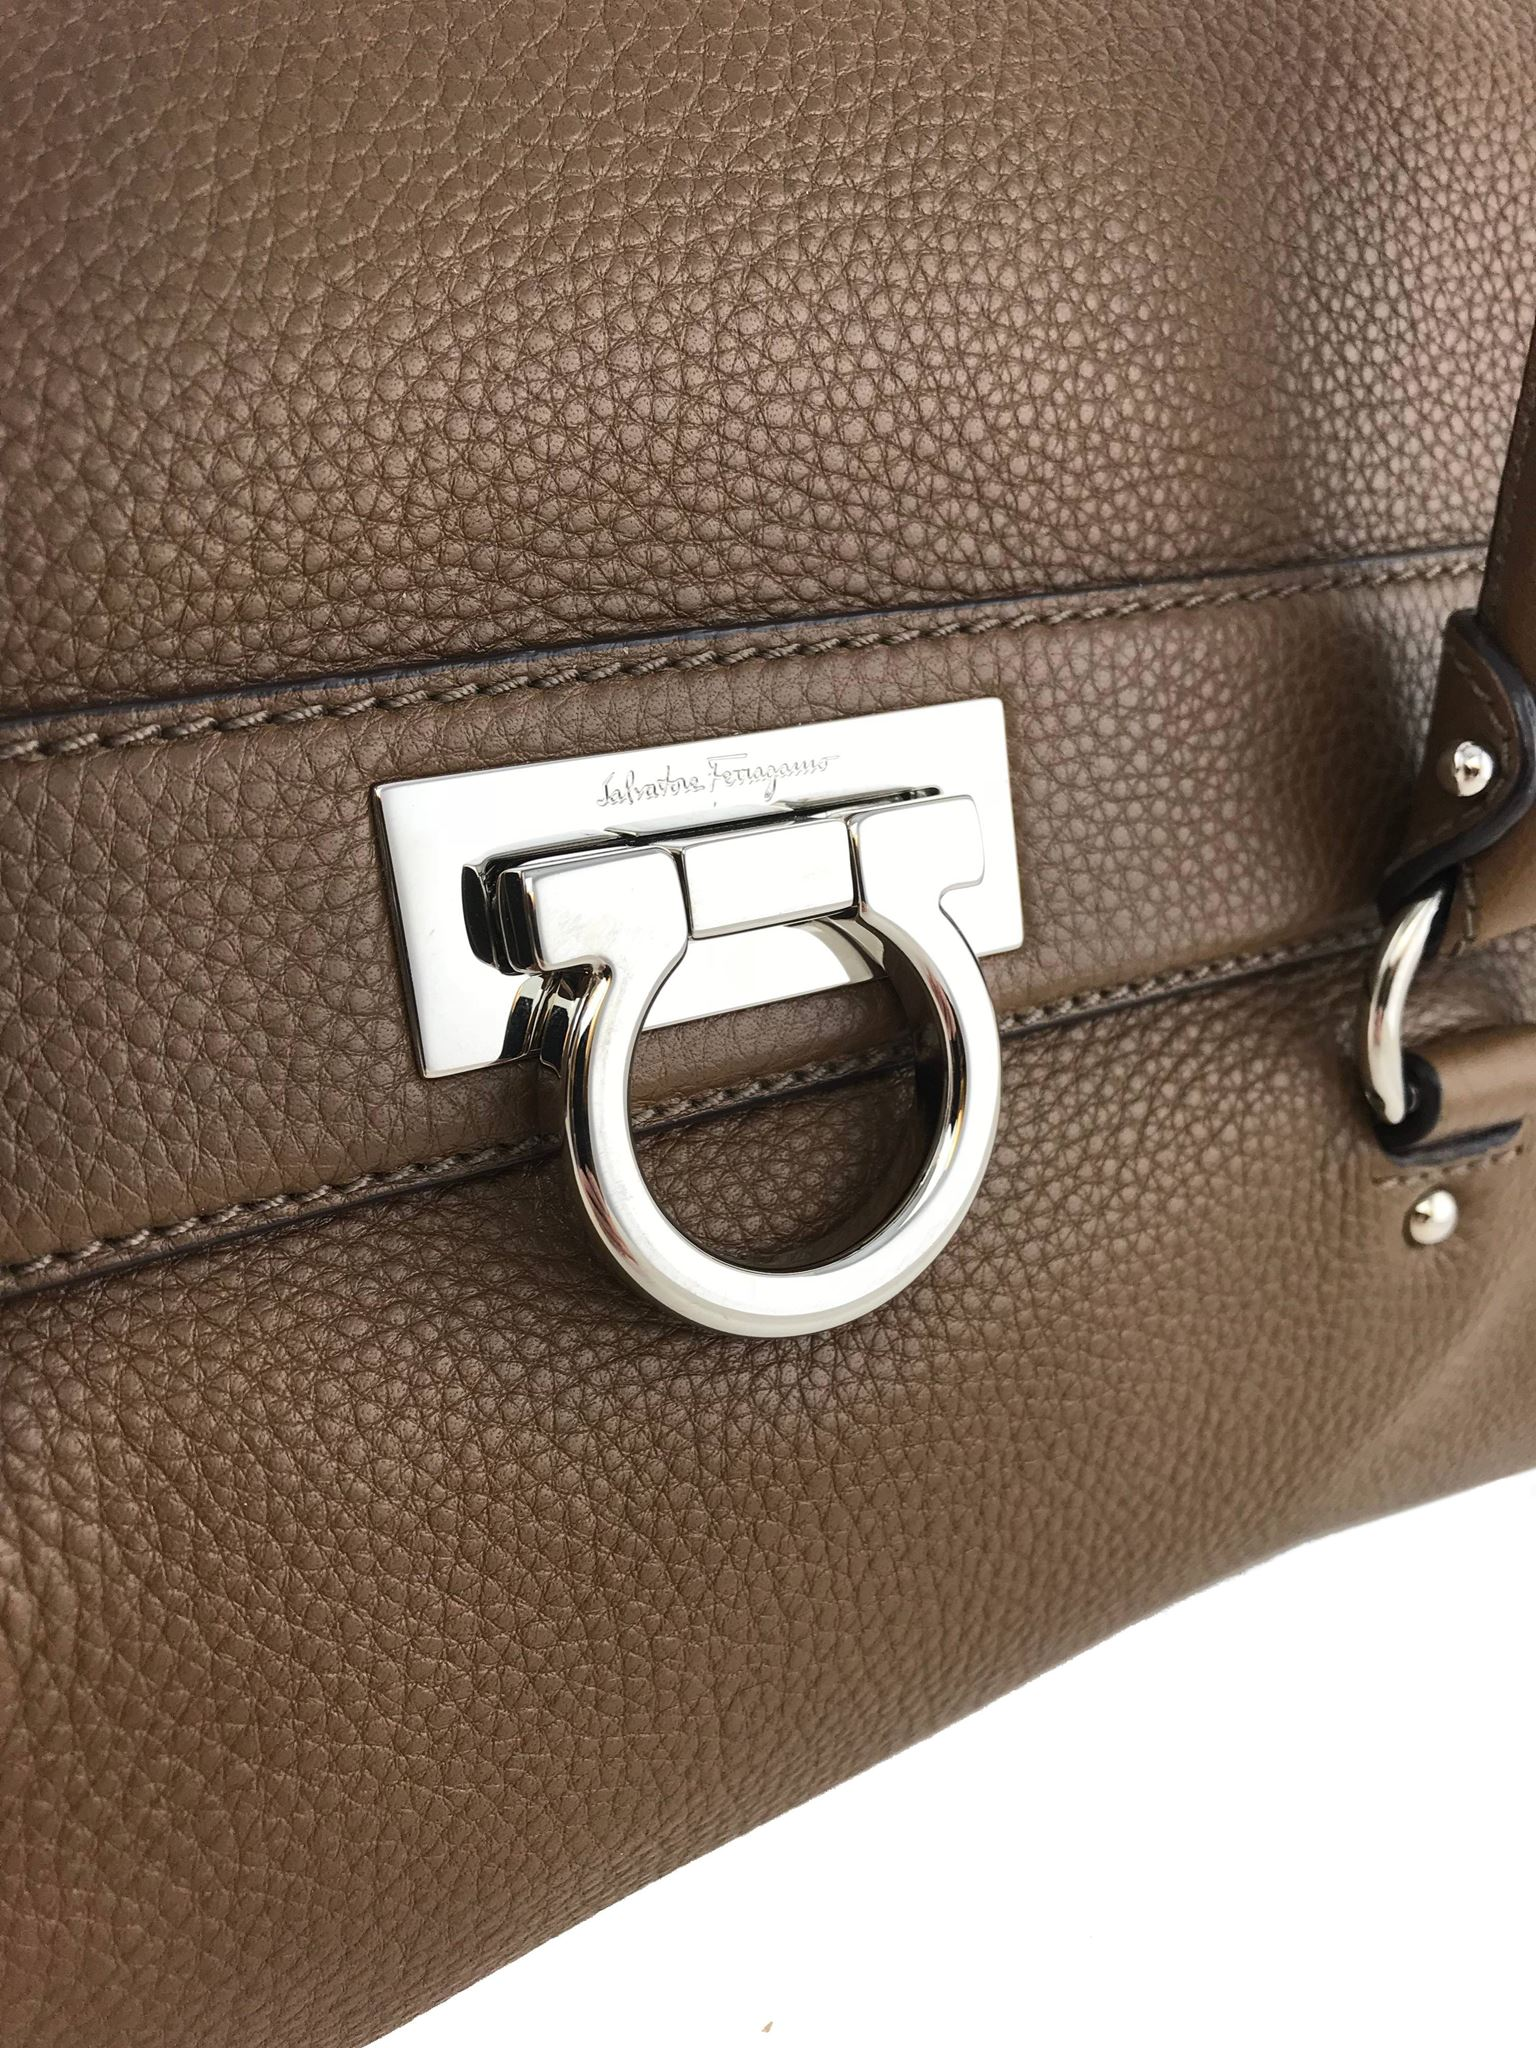 92cb411dd4b9 Salvatore Ferragamo Soft Gancini Flap Satchel Bag. Liquid error  Index was  out of range. Must be non-negative and less than the size of the collection.